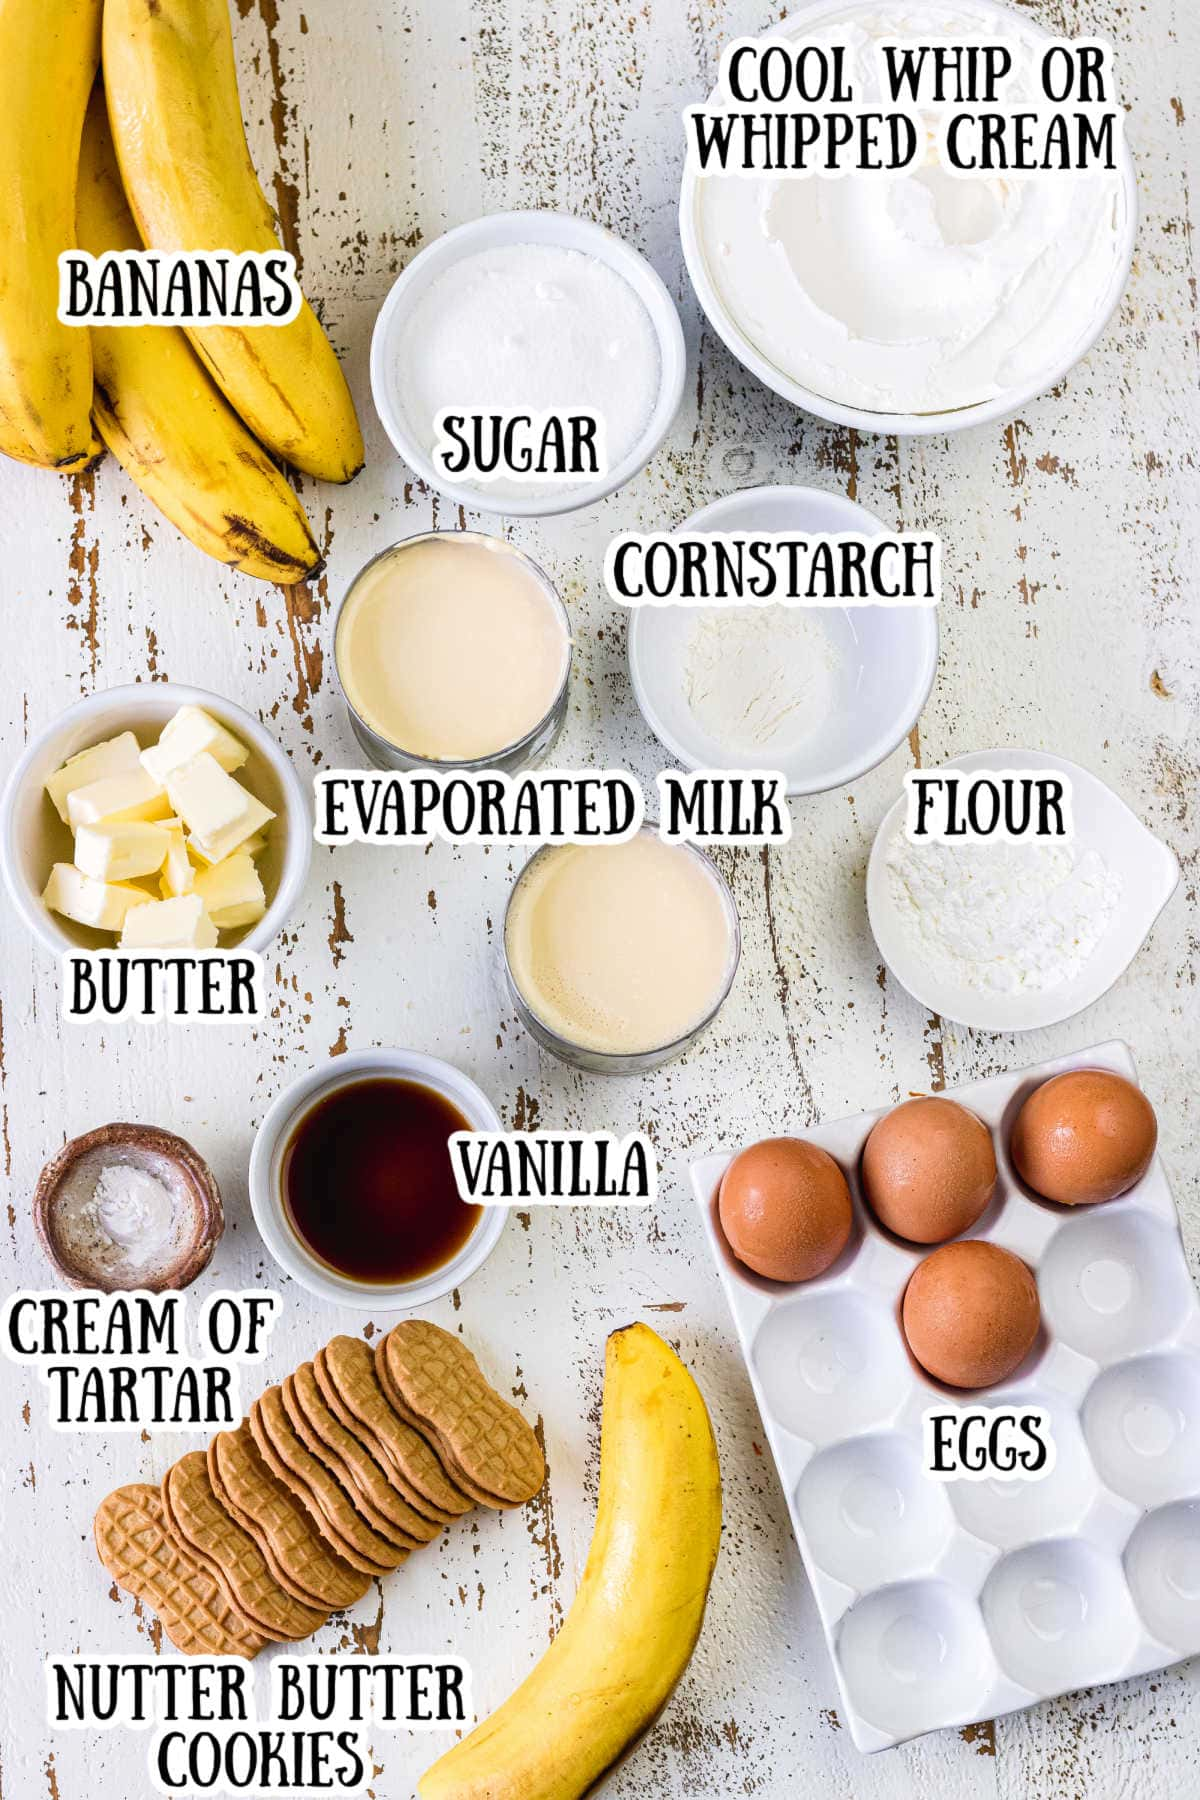 Ingredients for Nutter Butter Banana Pudding